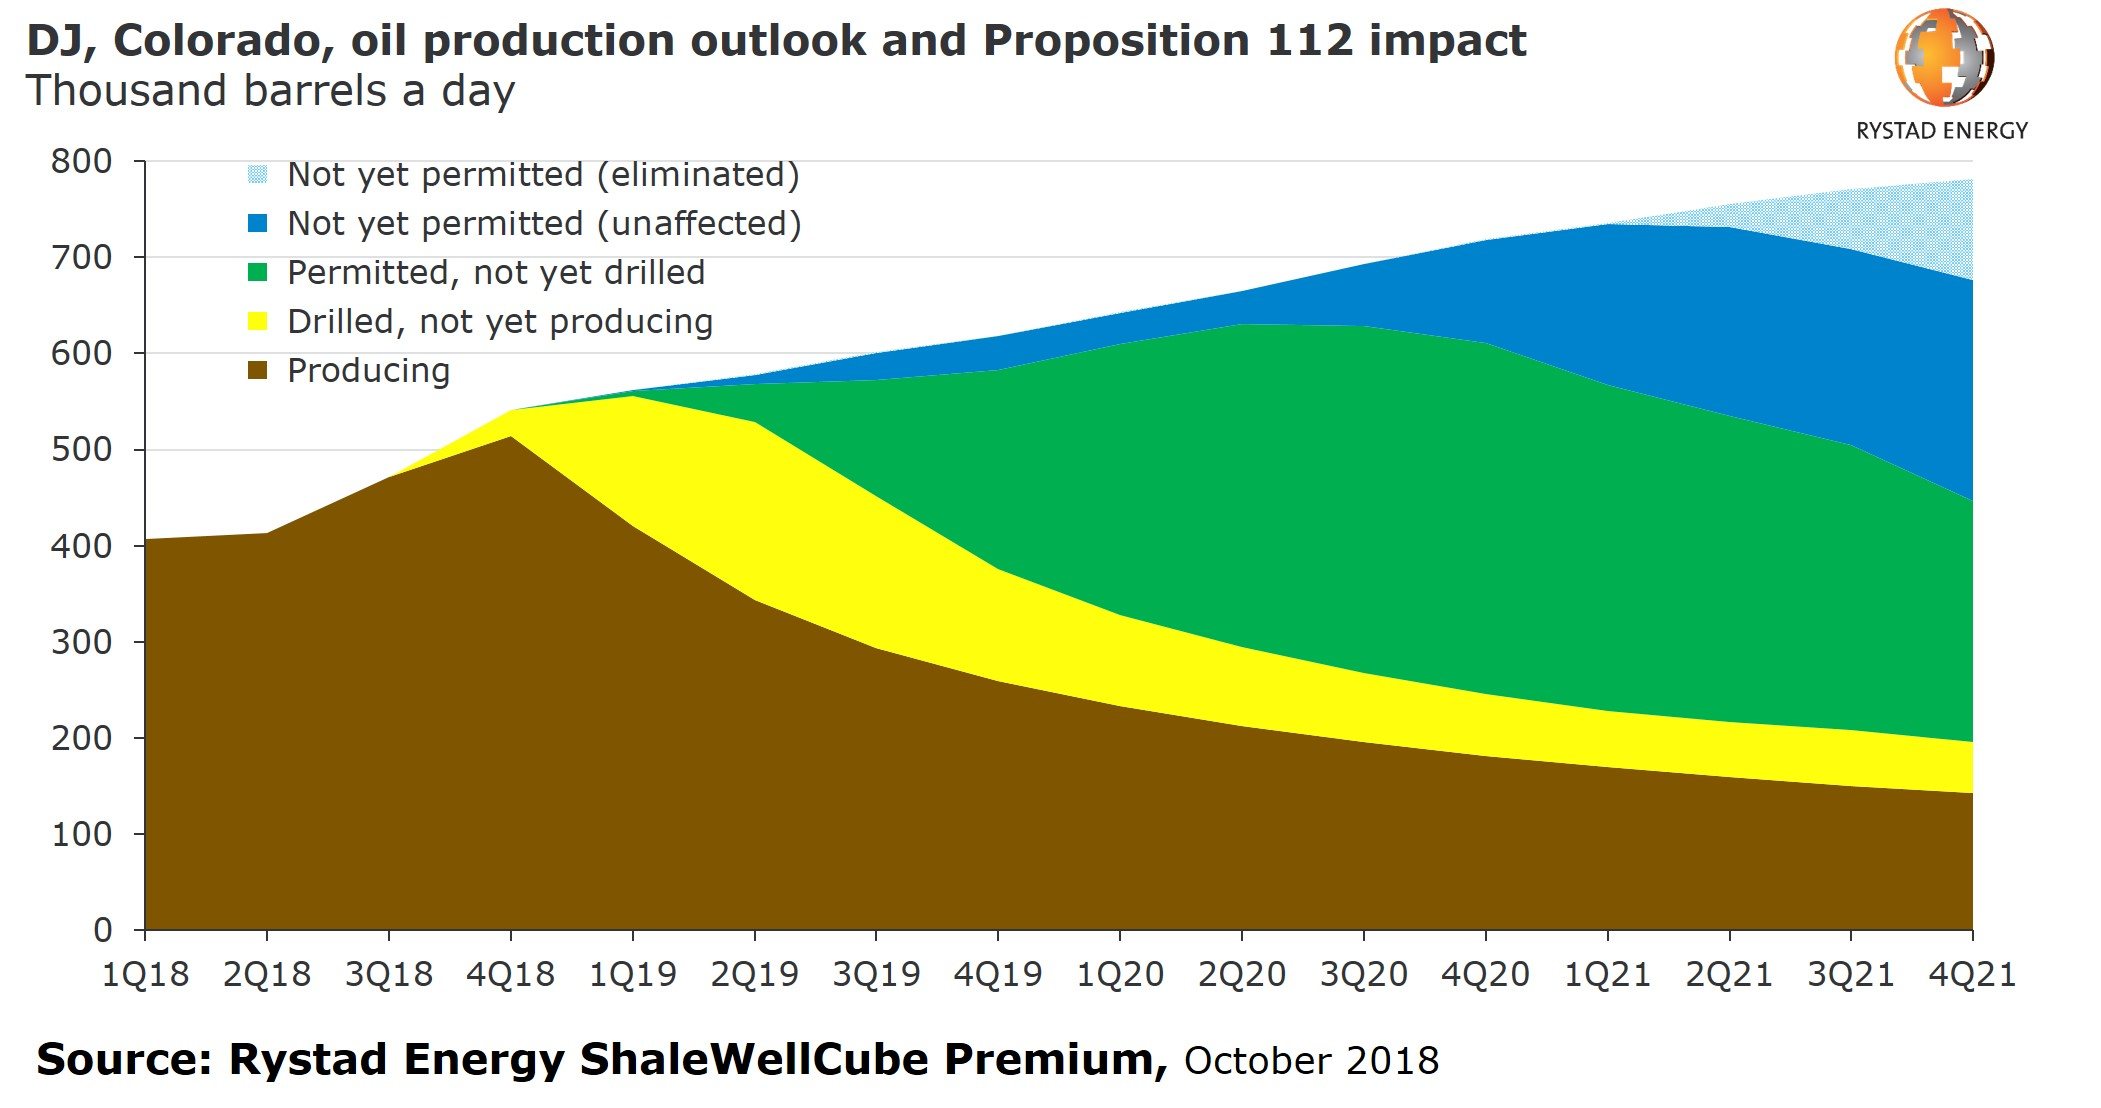 A chart showing DJ, Colorado, oil production outlook and Proposition 112 Impact in thousands barrels a day from 2018 to 2021, Source: Rystad Energy ShaleWellCube Premium